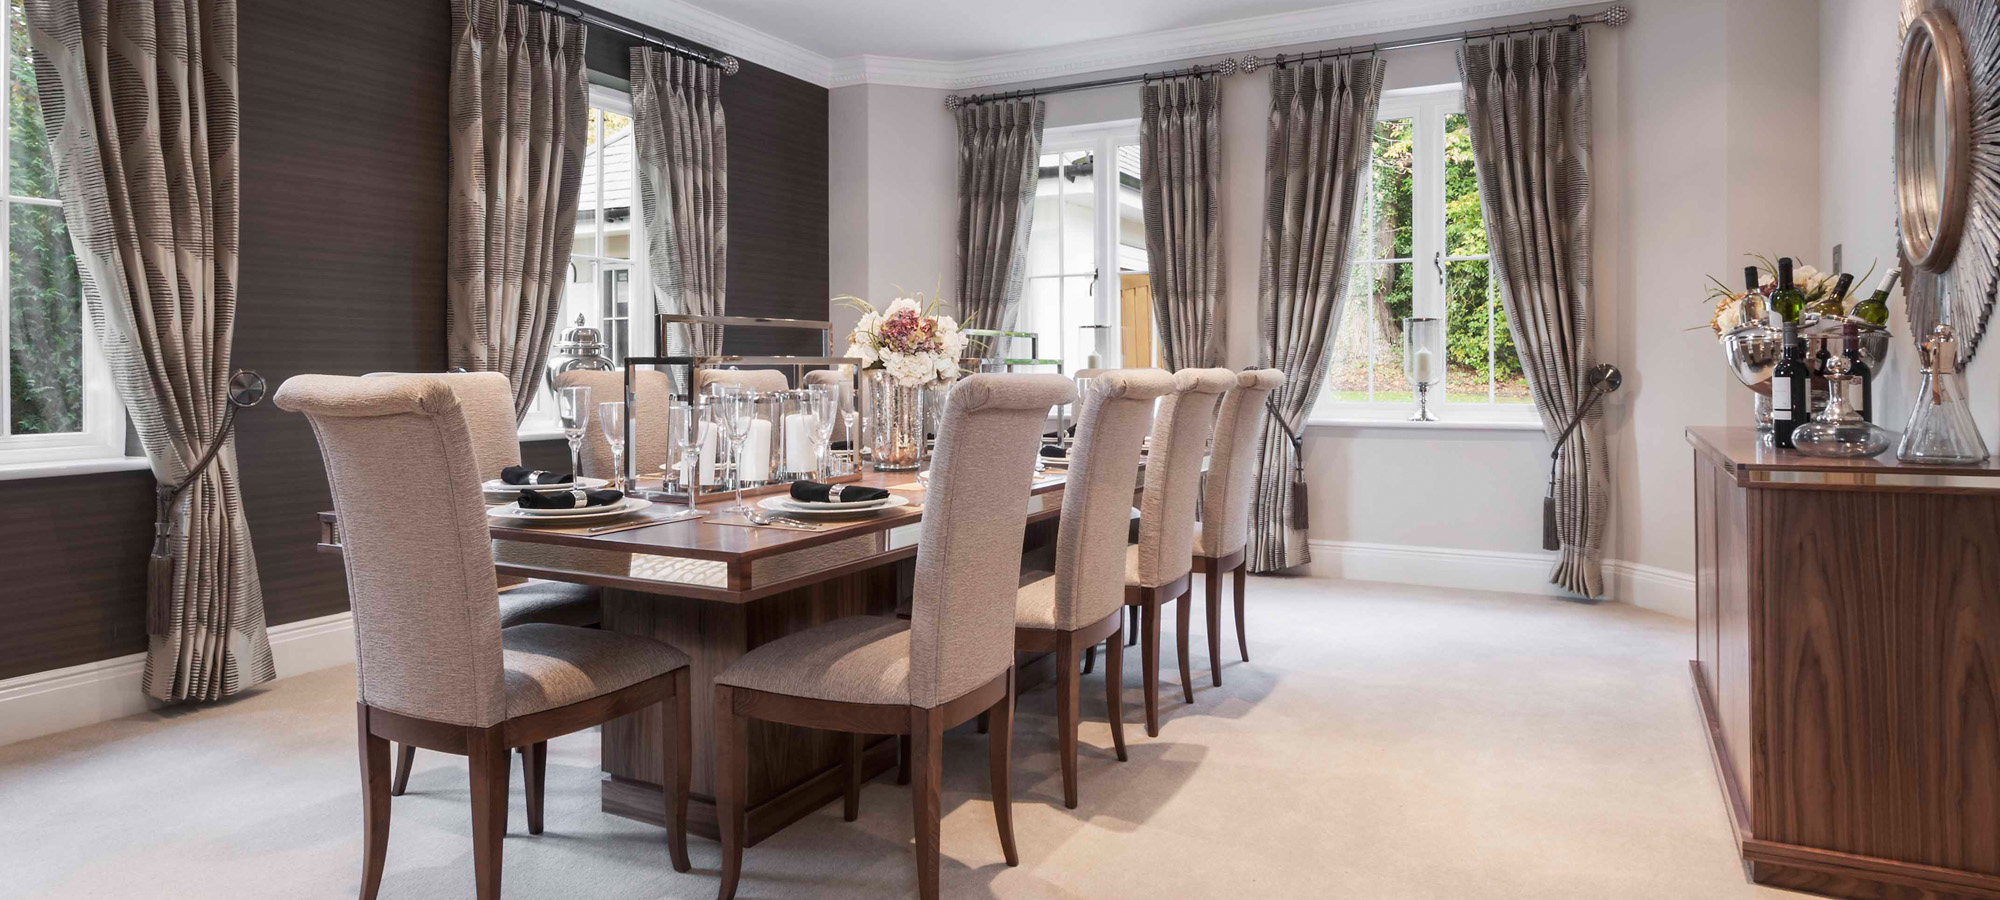 Bespoke Dining Table with Mirror detail and twin pedestal bases